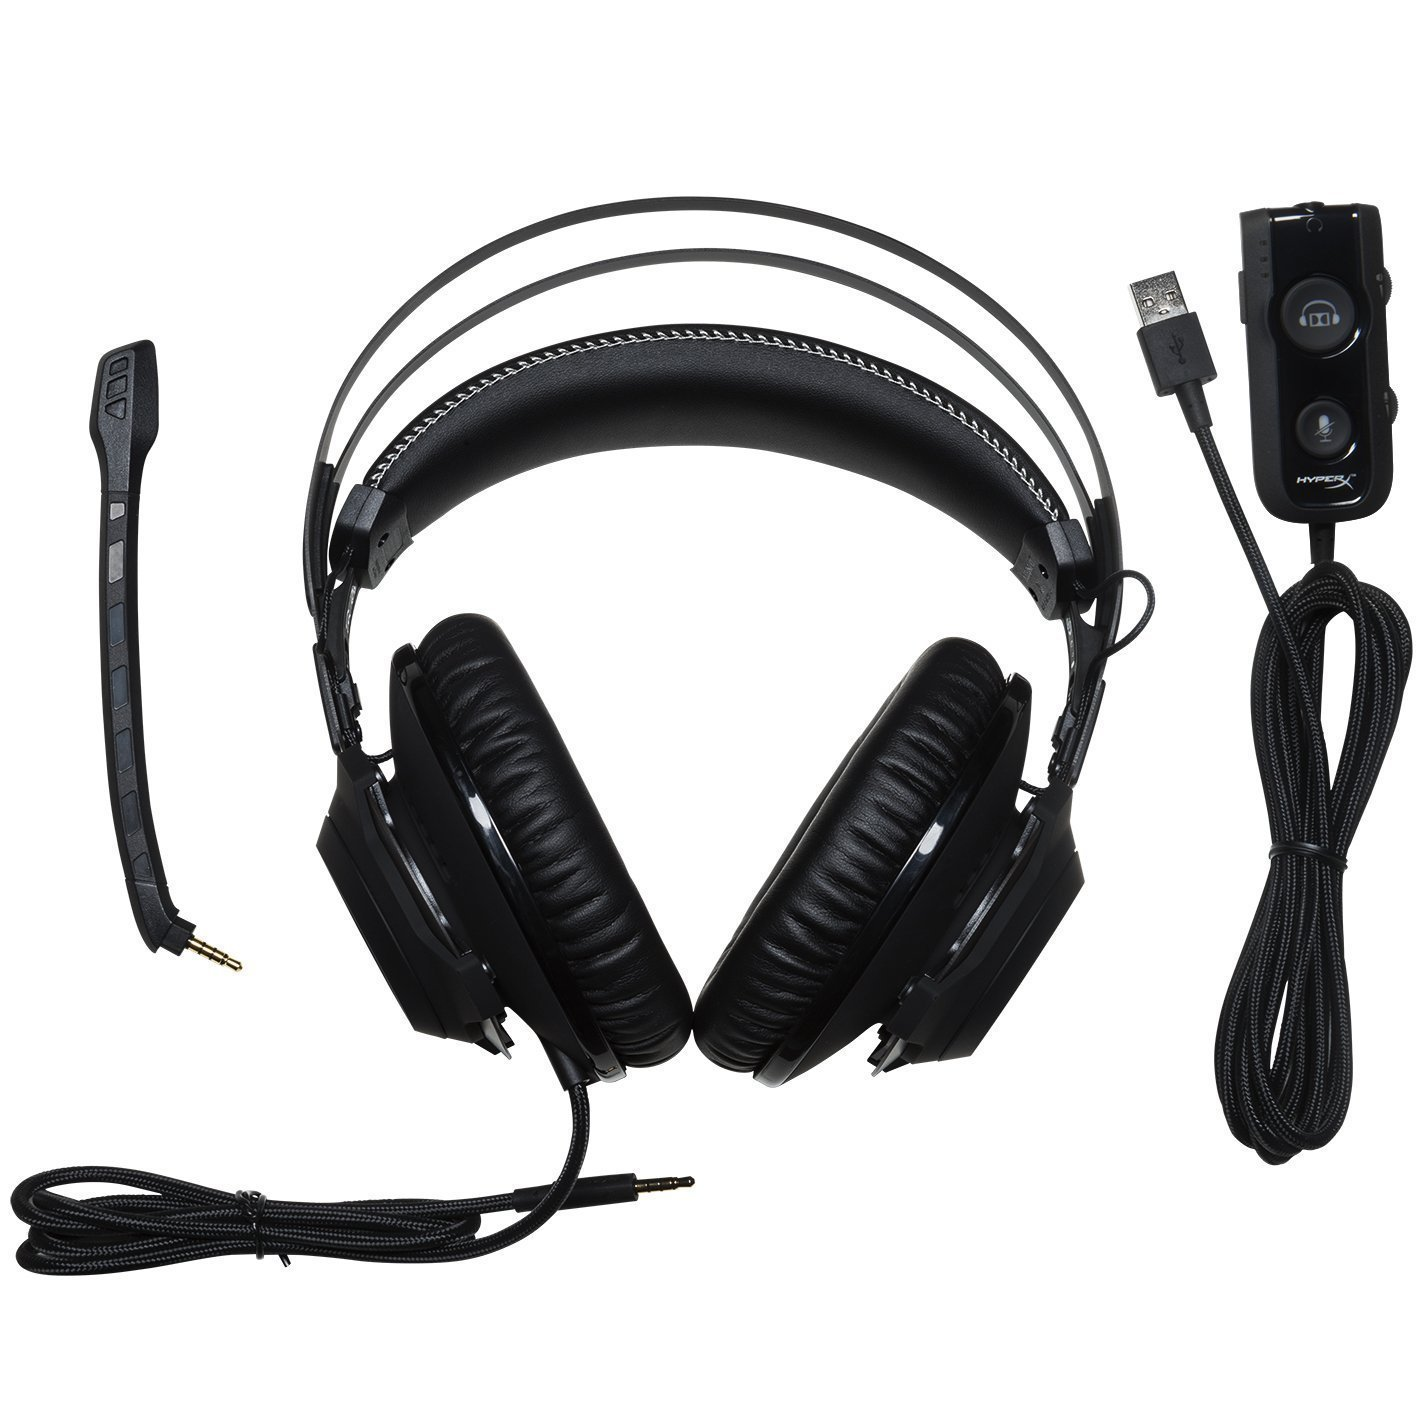 Kingston Hyperx Cloud Revolver S Gaming Headset With Dolby